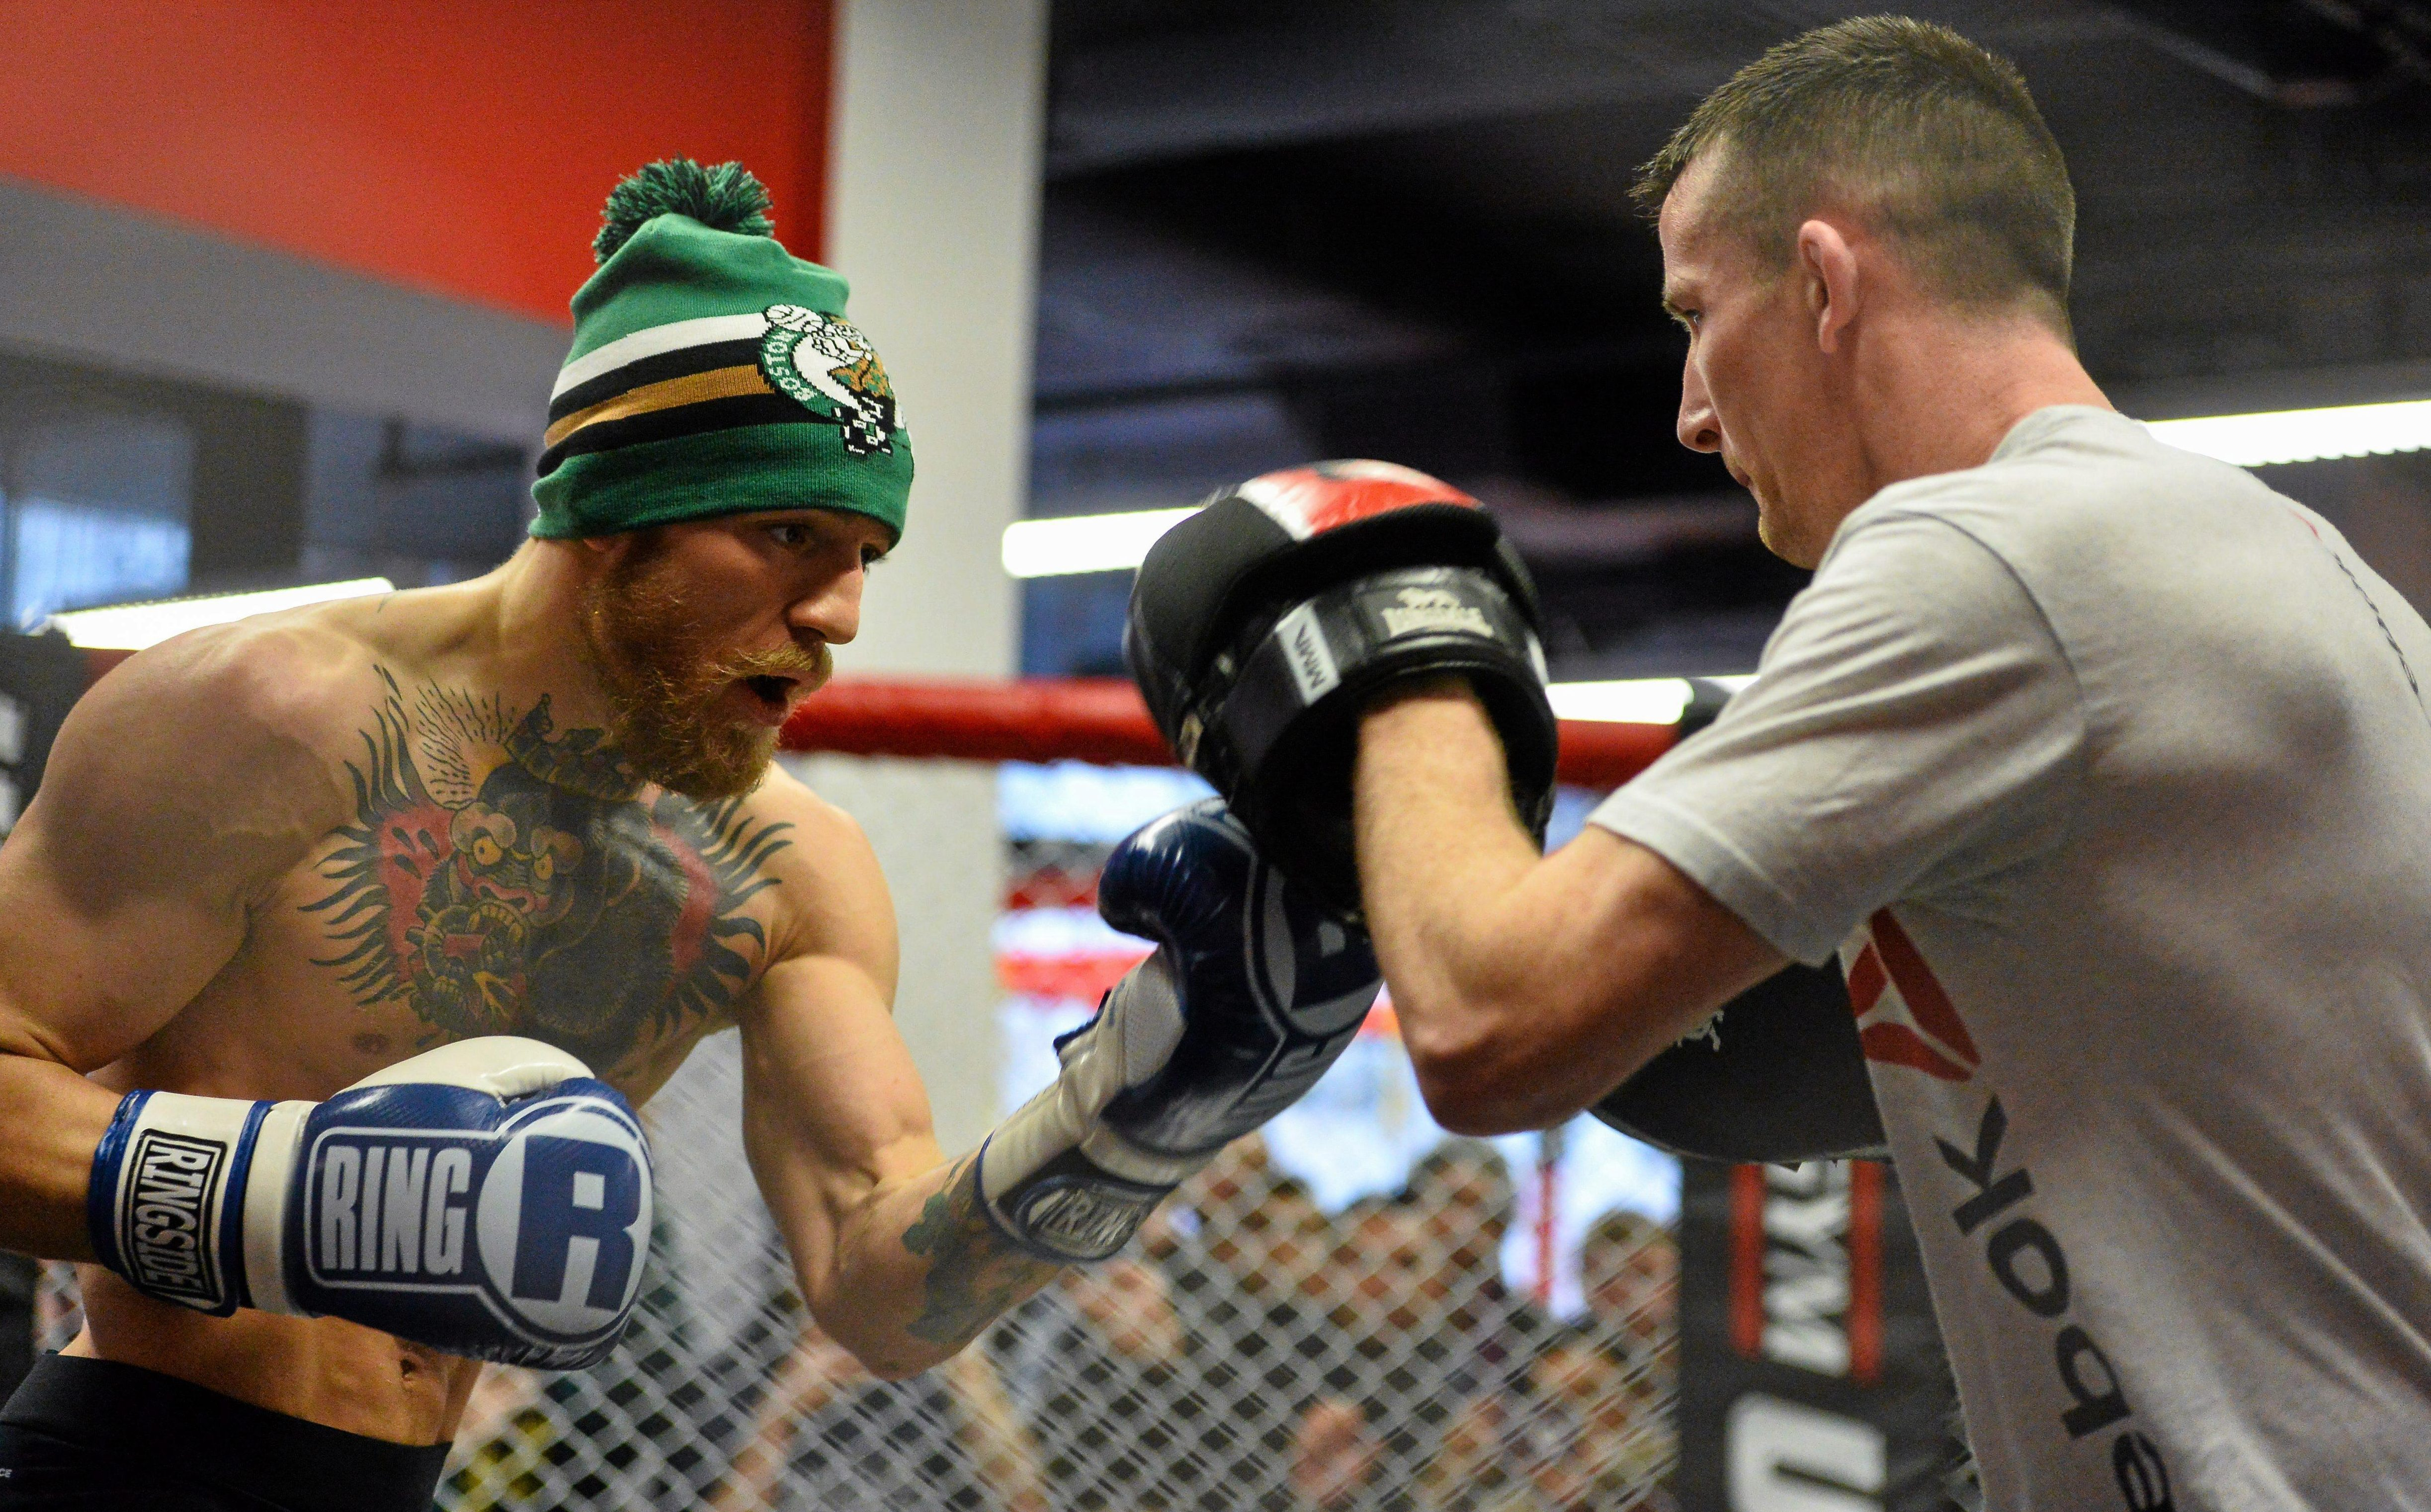 Conor McGregor did not employ a boxing coach for his Mayweather fight - he trusted Owen Roddy